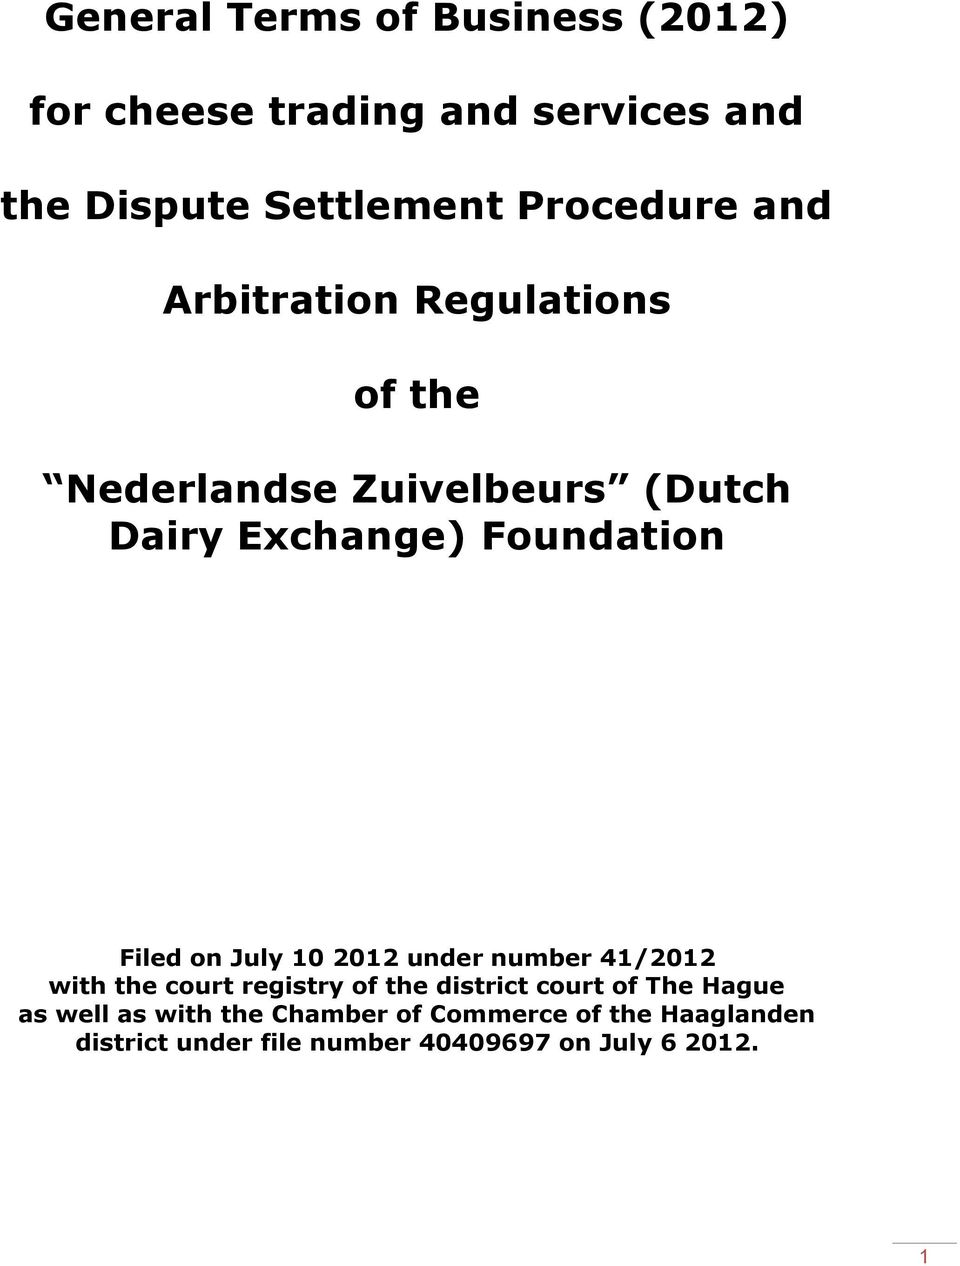 July 10 2012 under number 41/2012 with the court registry of the district court of The Hague as well